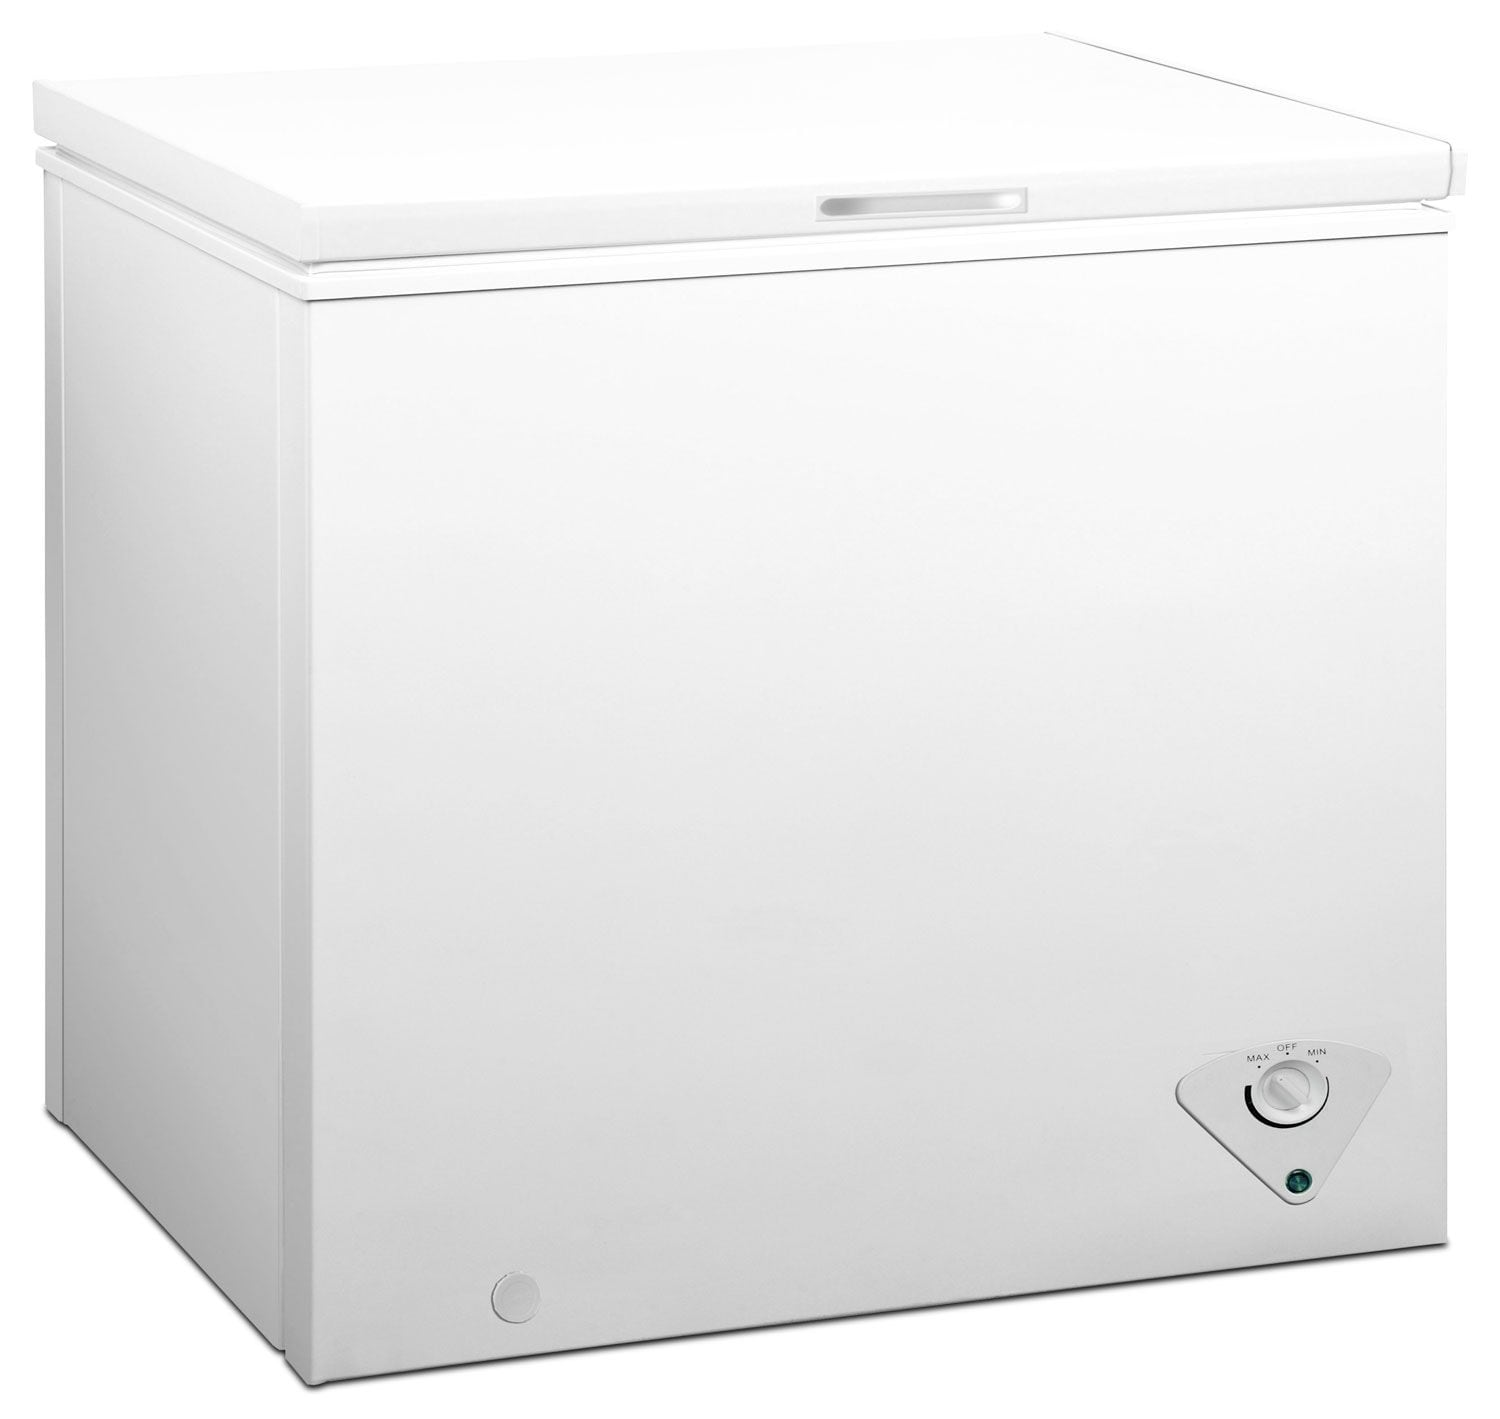 Midea 7.0 Cu. Ft. Chest Freezer - White